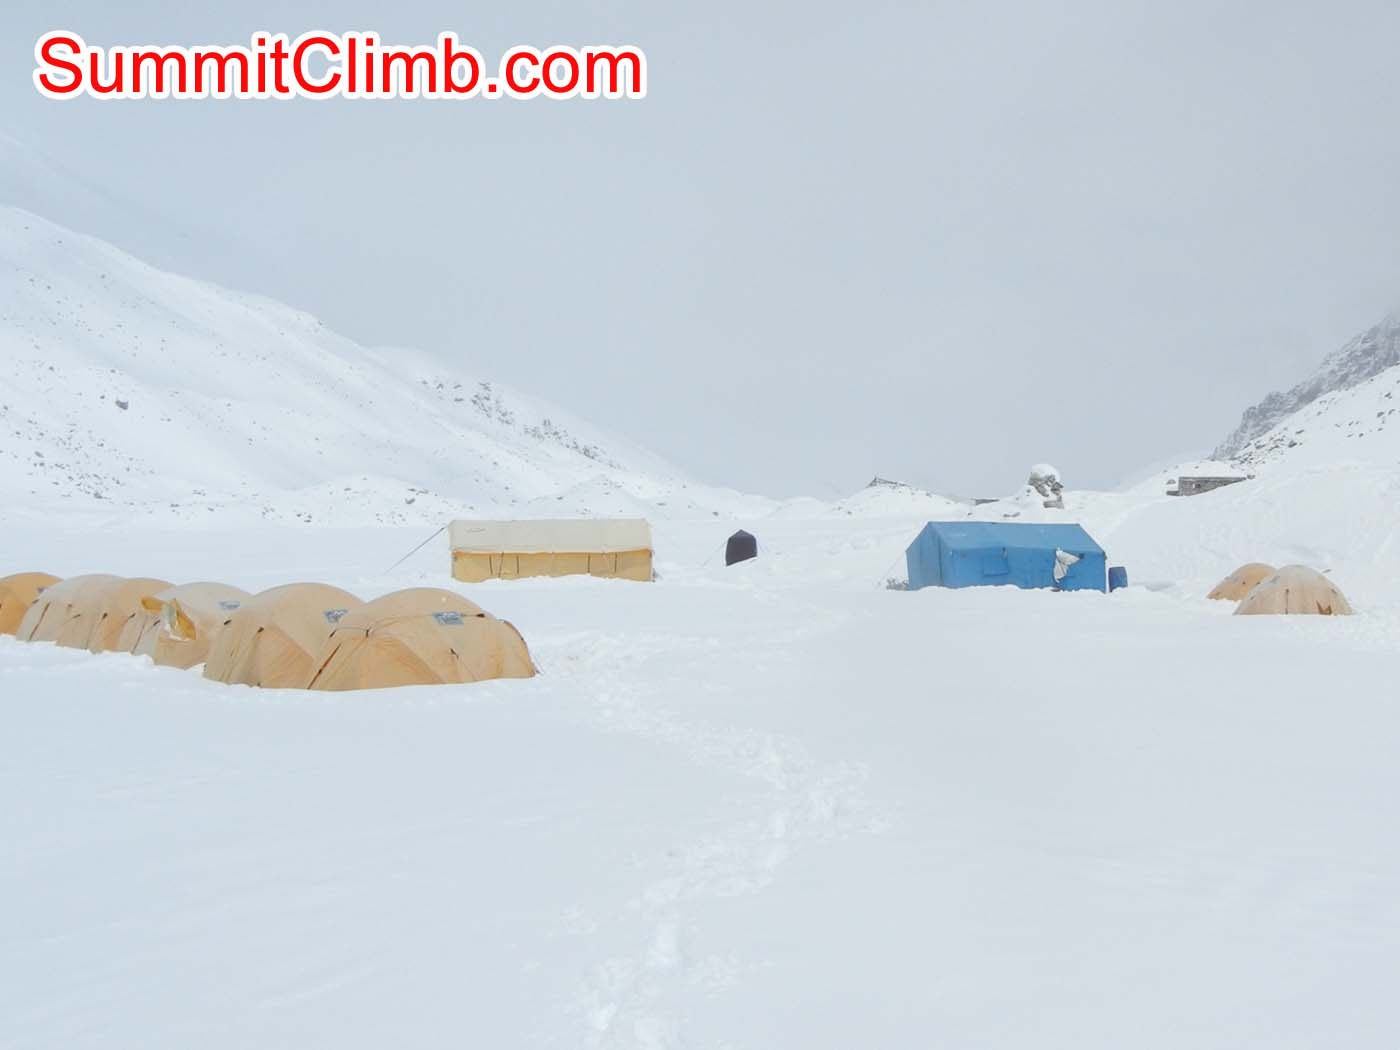 Everest Basecamp after digging out tents from snowstorm - Photo Scott Patch